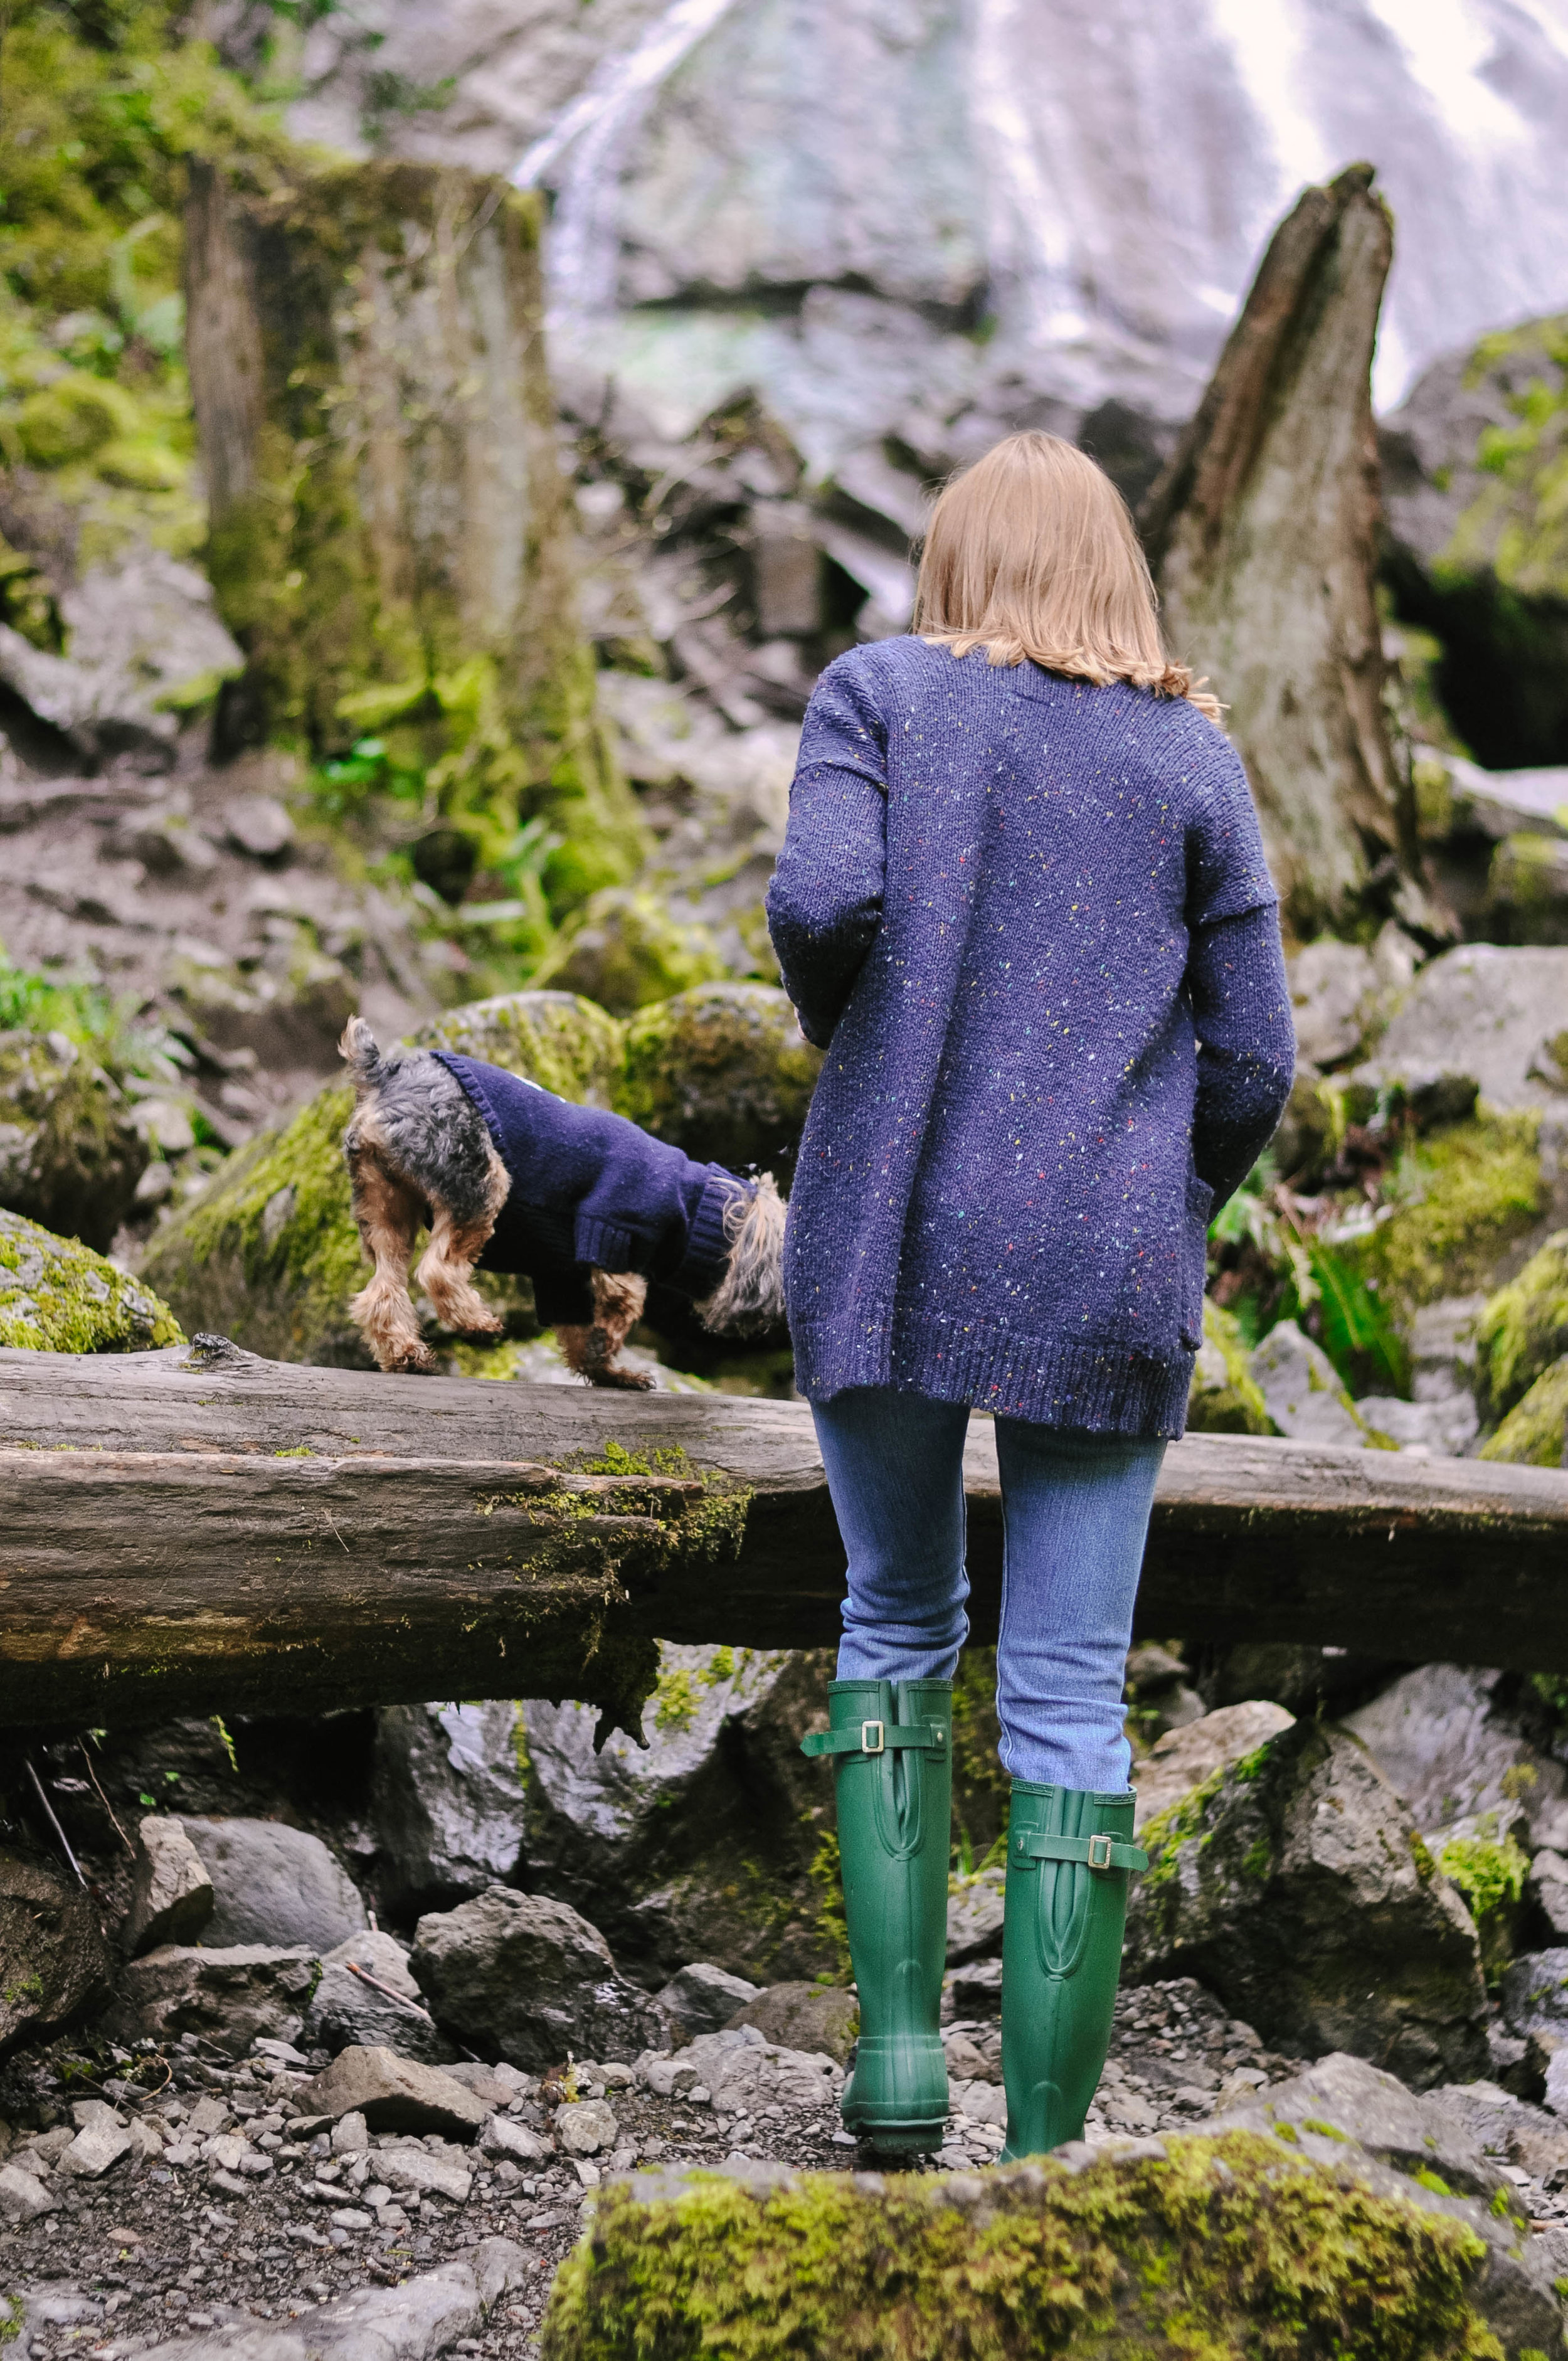 Woman hiking in rubber boots with small dog